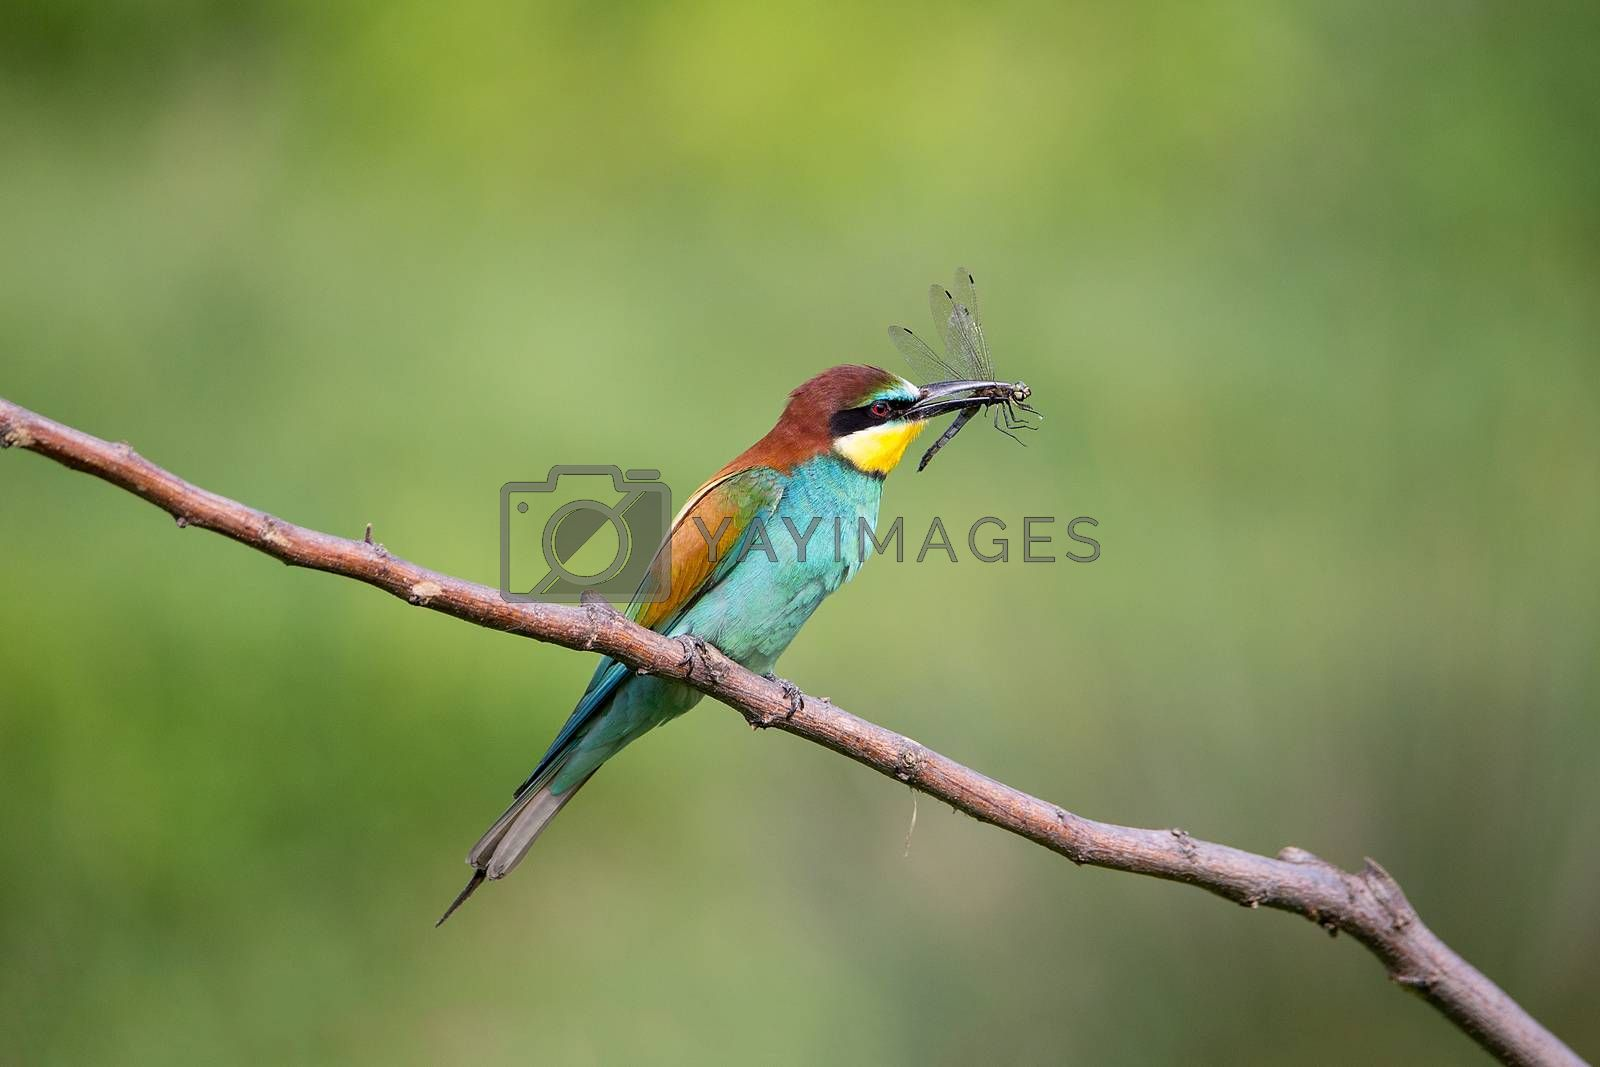 Bee-eater (Merops apiaster) with insect - dragonfly on brunch - tropical colours bird, Isola della Cona, Monfalcone, Italy, Europe